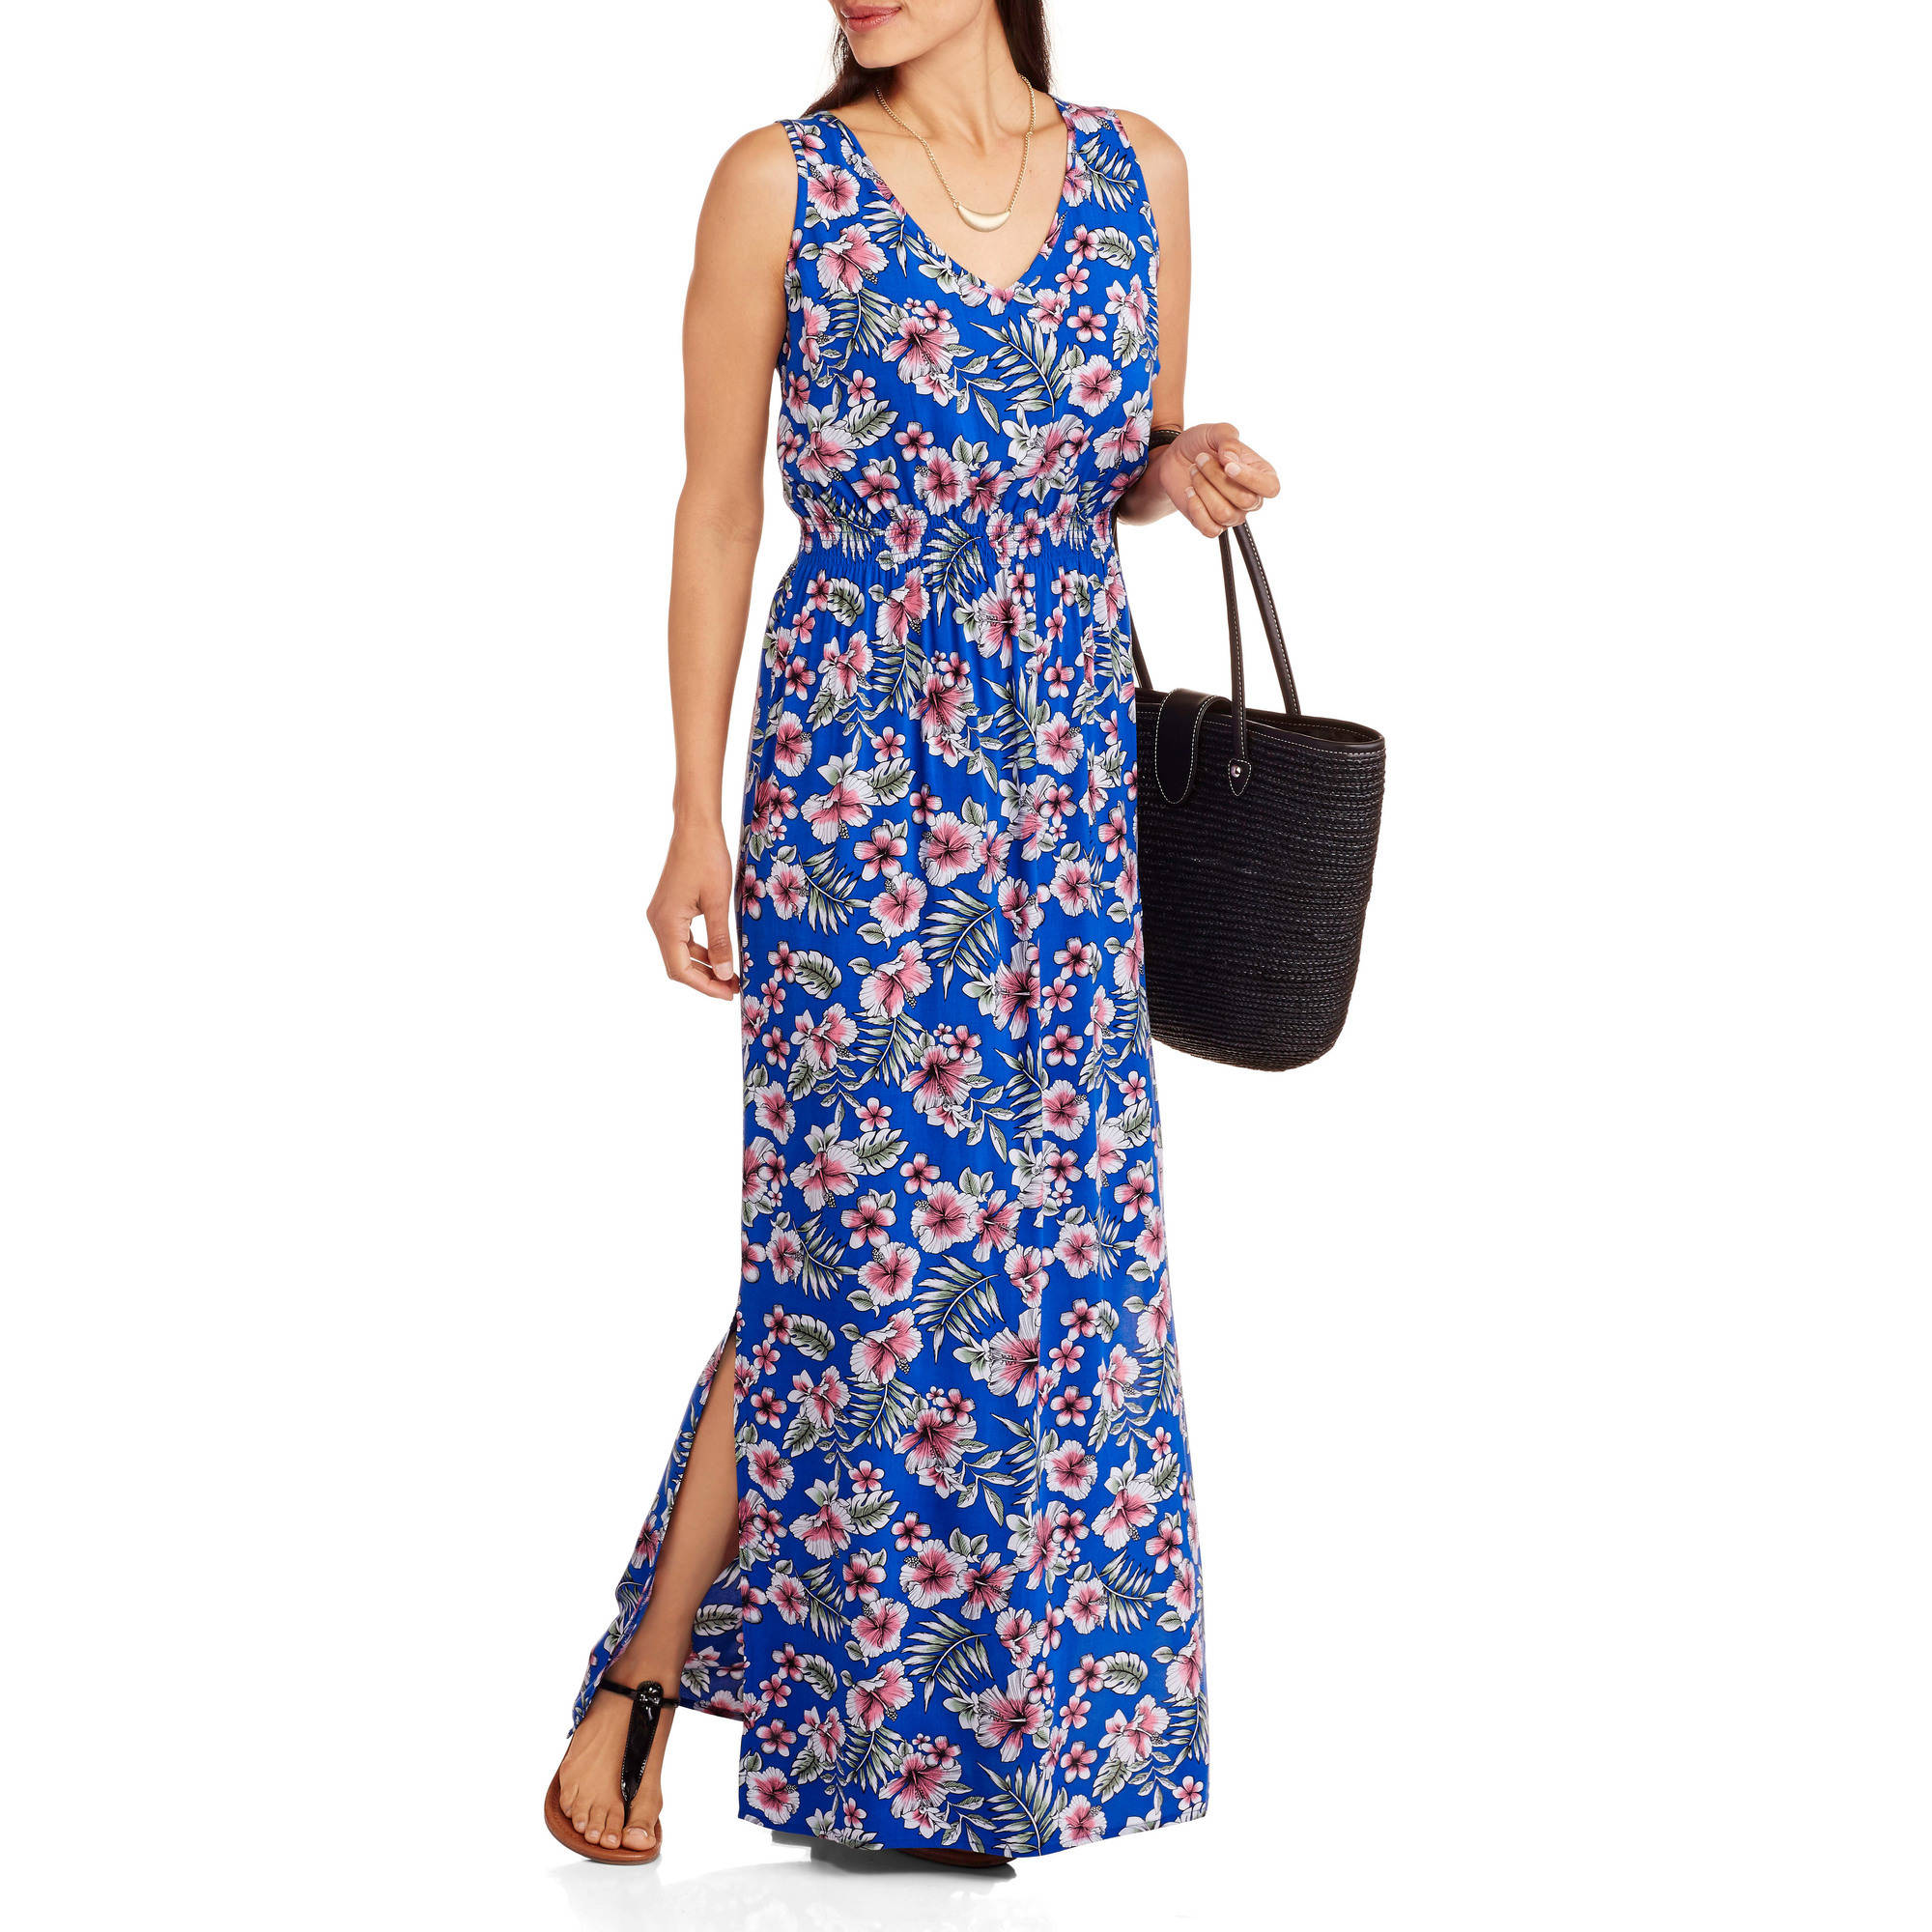 Ocean Pacific Women's V-Neck Maxi Dress with Smocked Waist